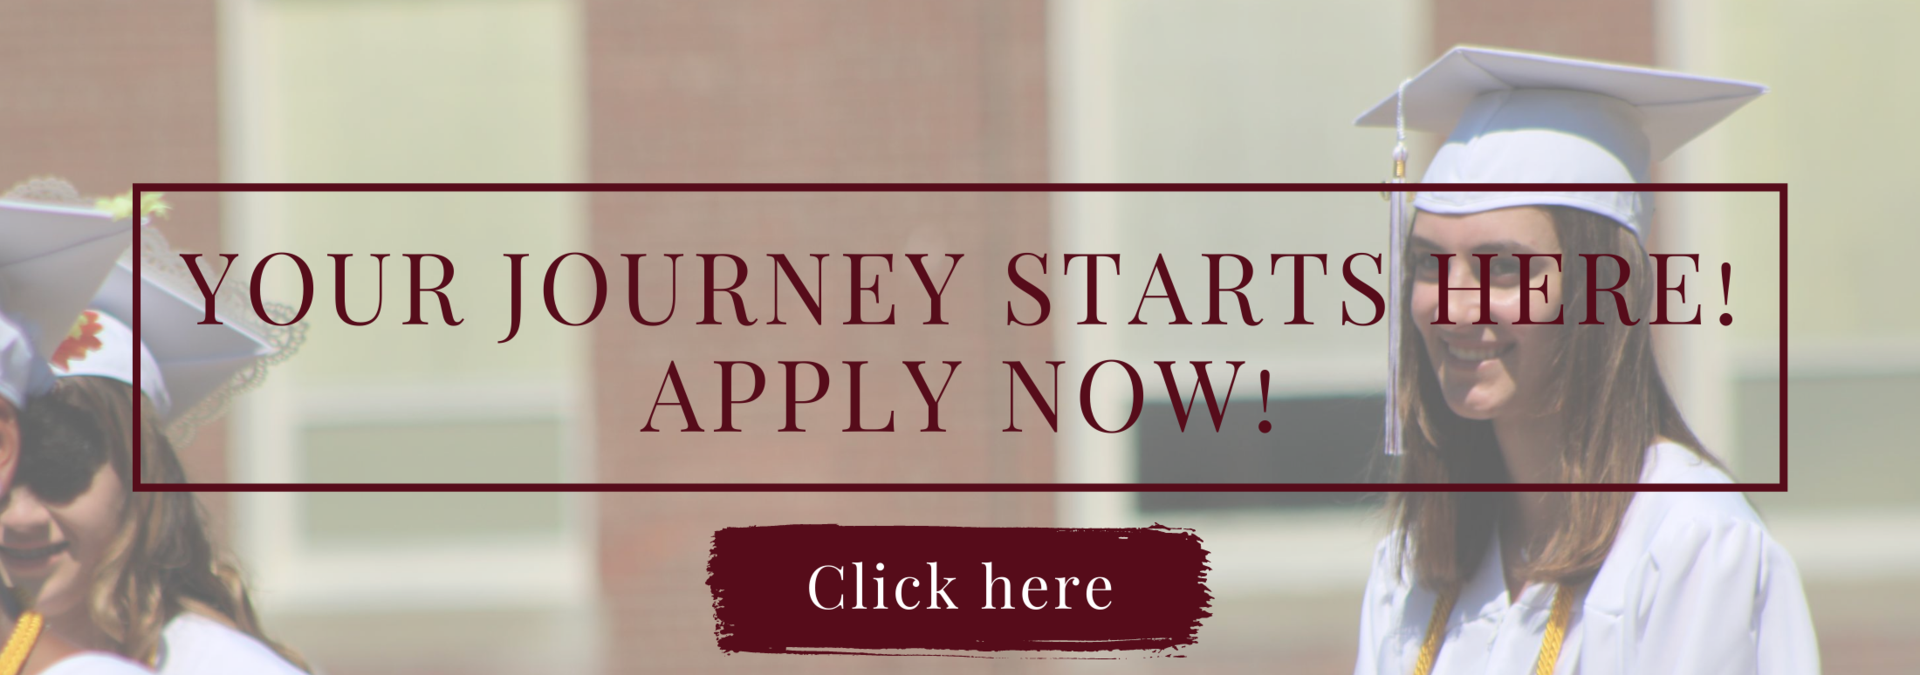 Your journey starts here! Apply now!